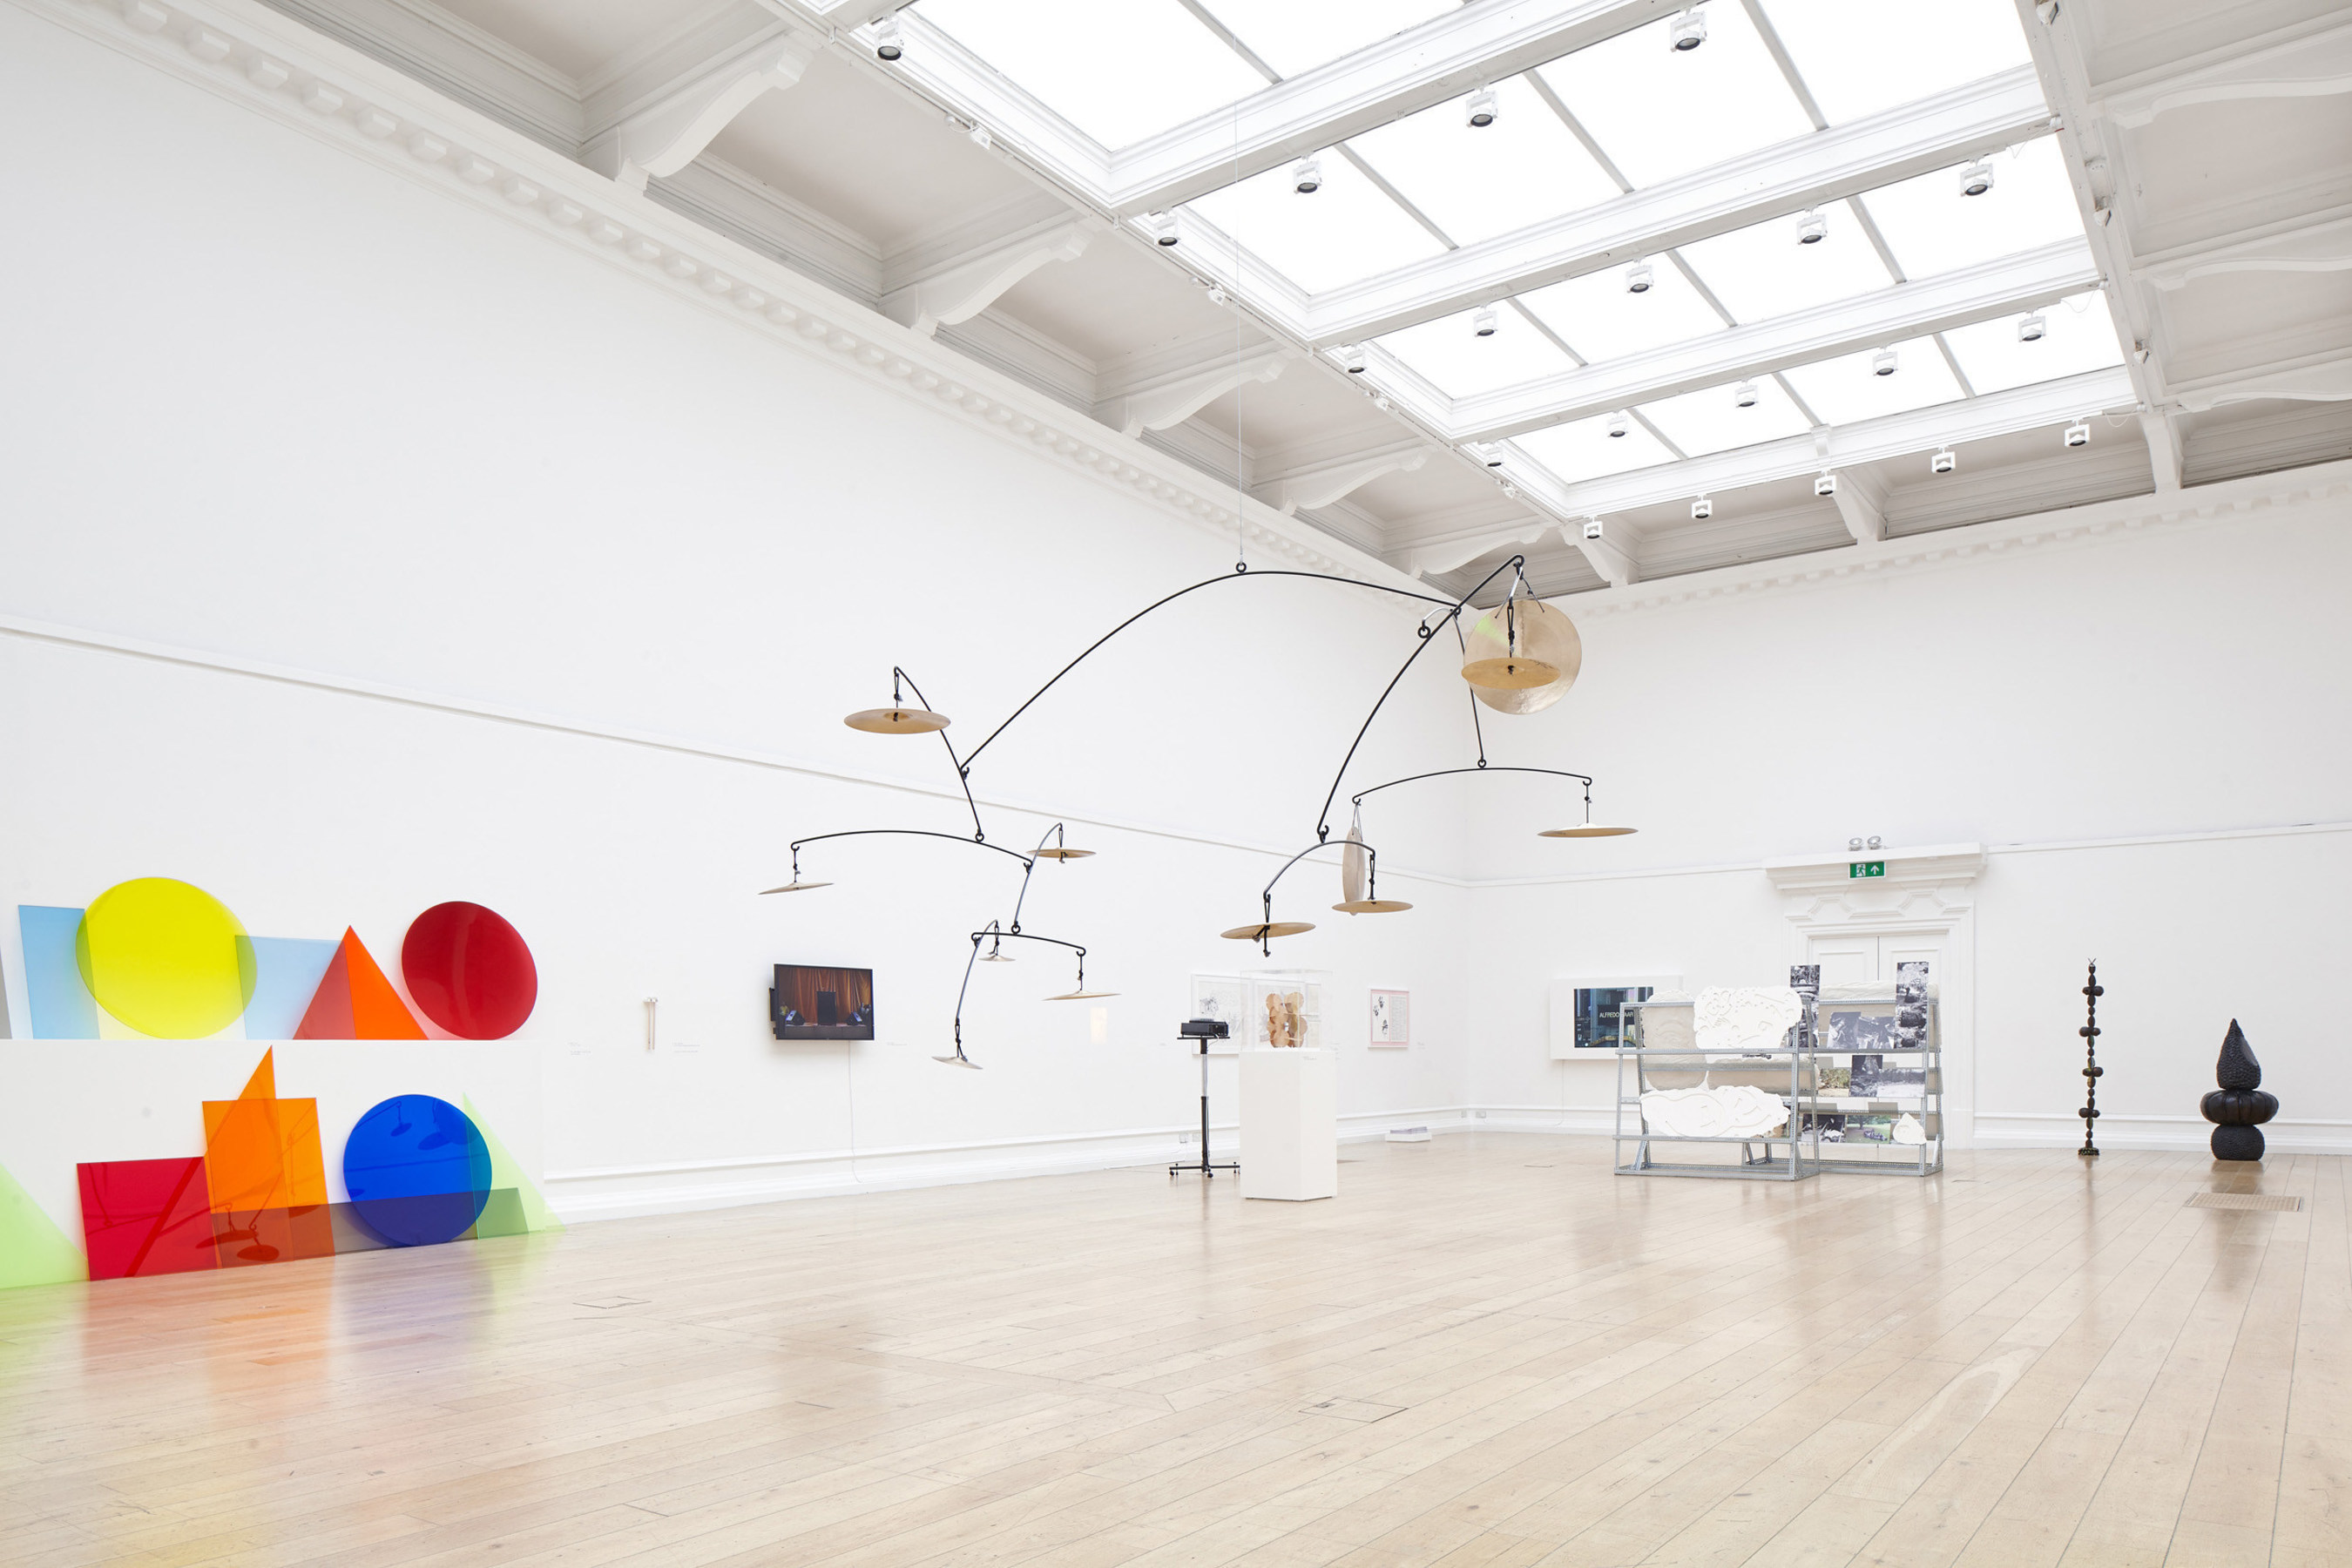 Installation view: Under the Same Sun: Art from Latin America Today, South London Gallery, June 10-September 4, 2016. Photo: Andy Stagg